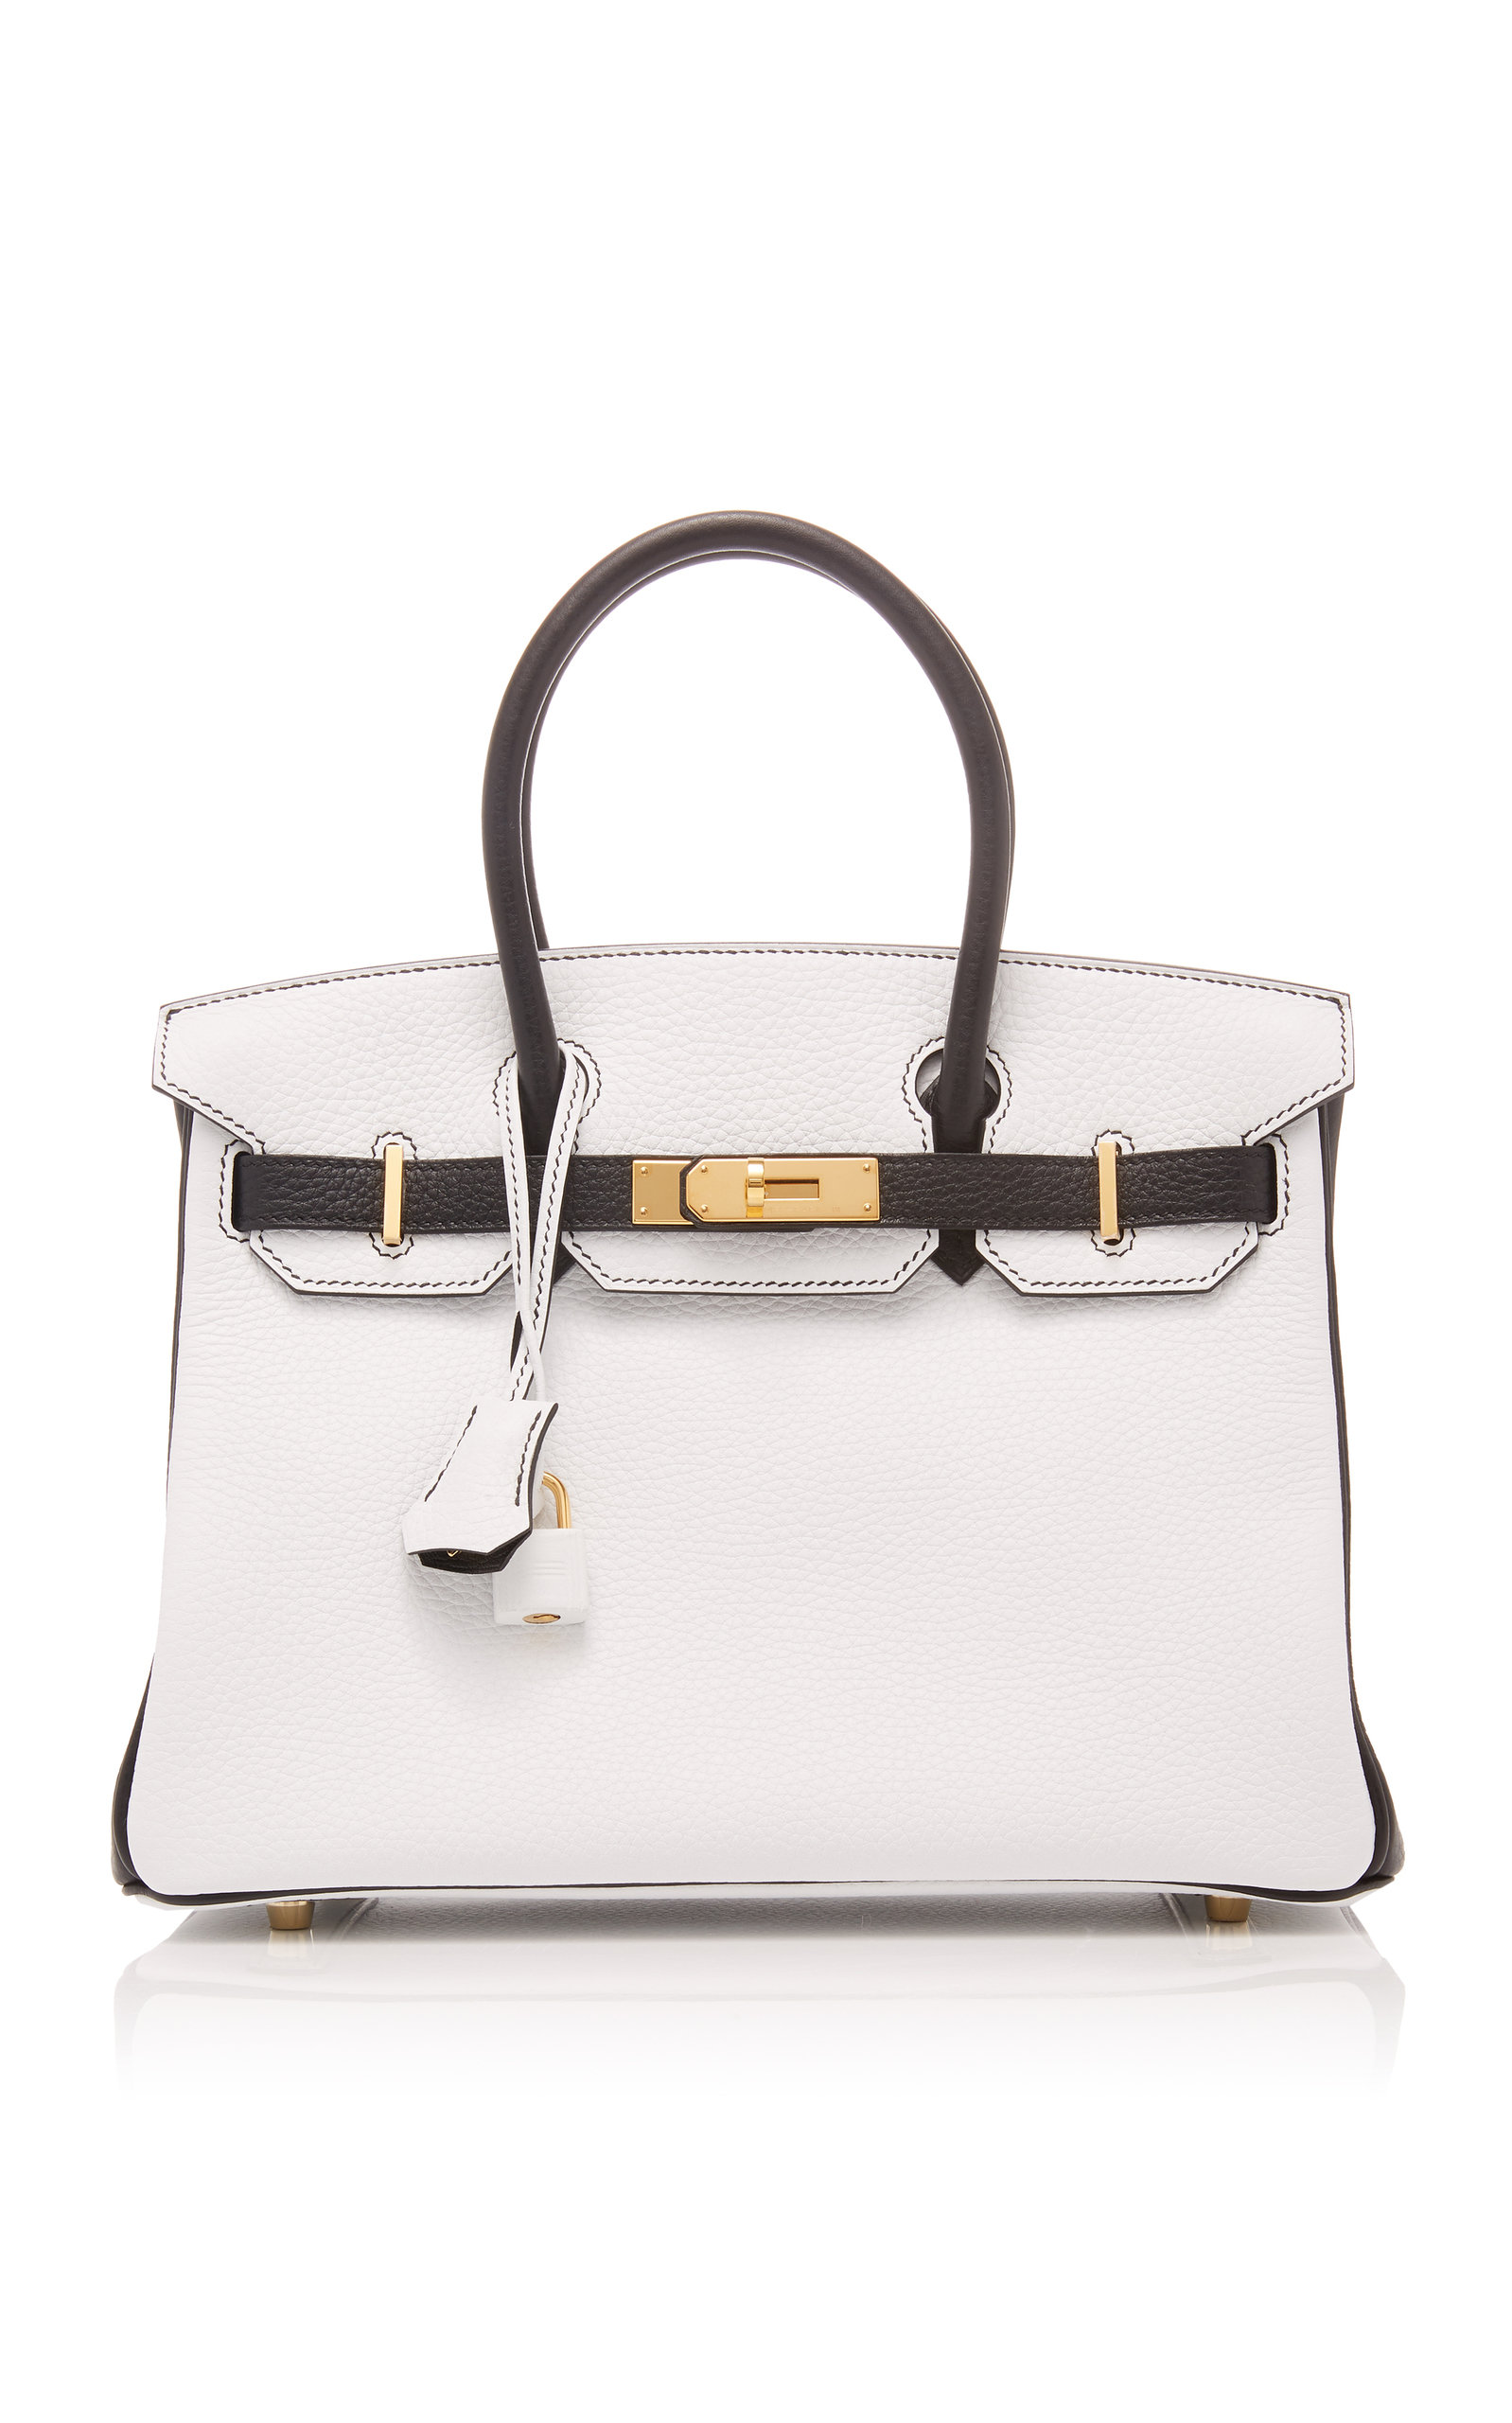 Hermes VintageHermes 30cm White and Black Clemence Leather Special Order  Horseshoe Birkin Bag. CLOSE. Loading ae96e53846f79